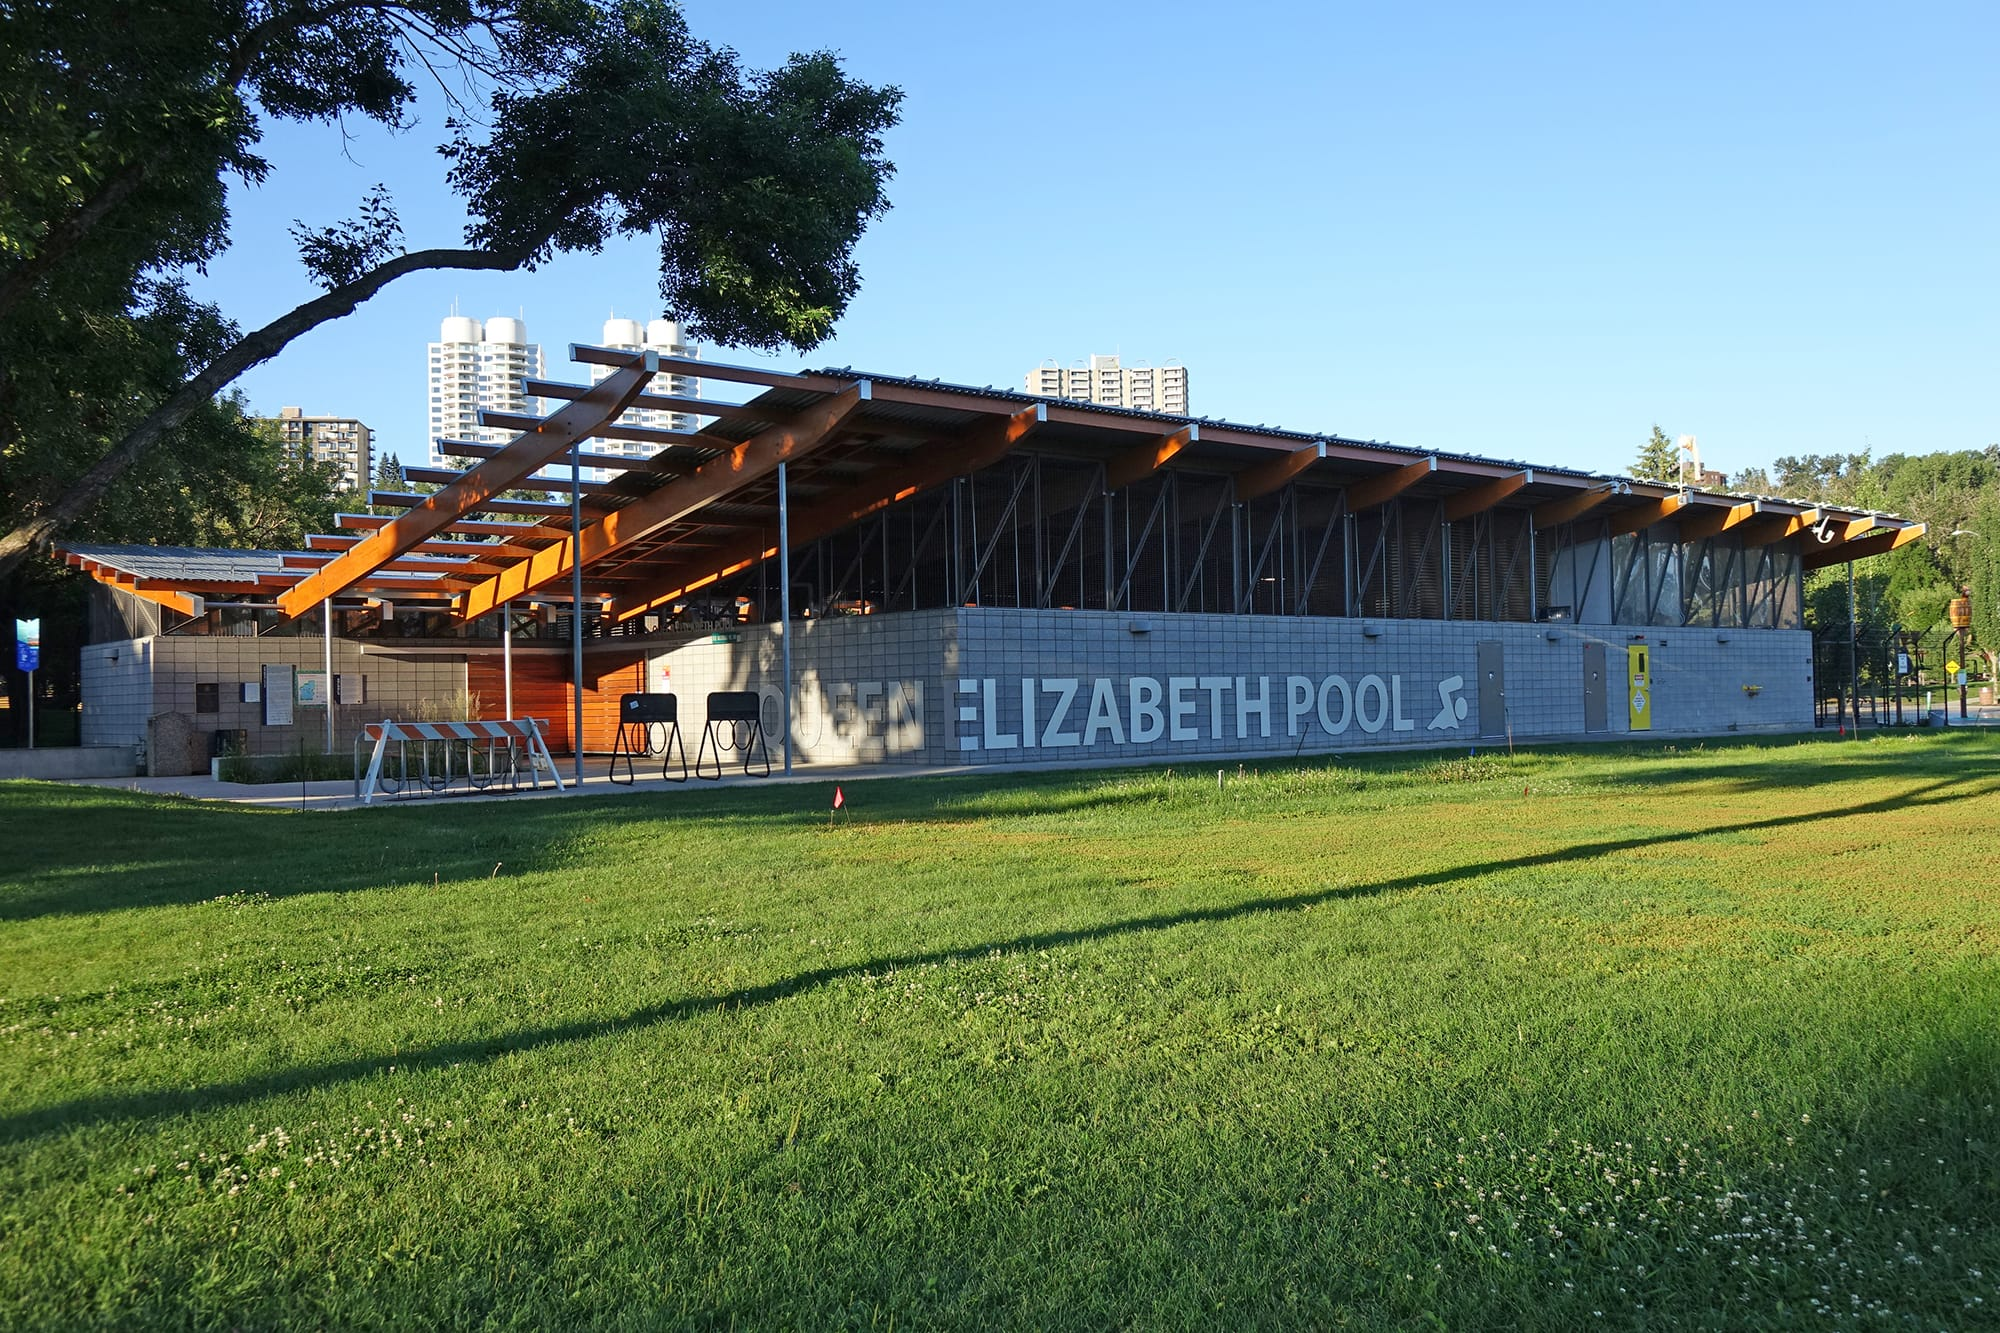 Queen-Elizabeth-Pool exterior from the lawn